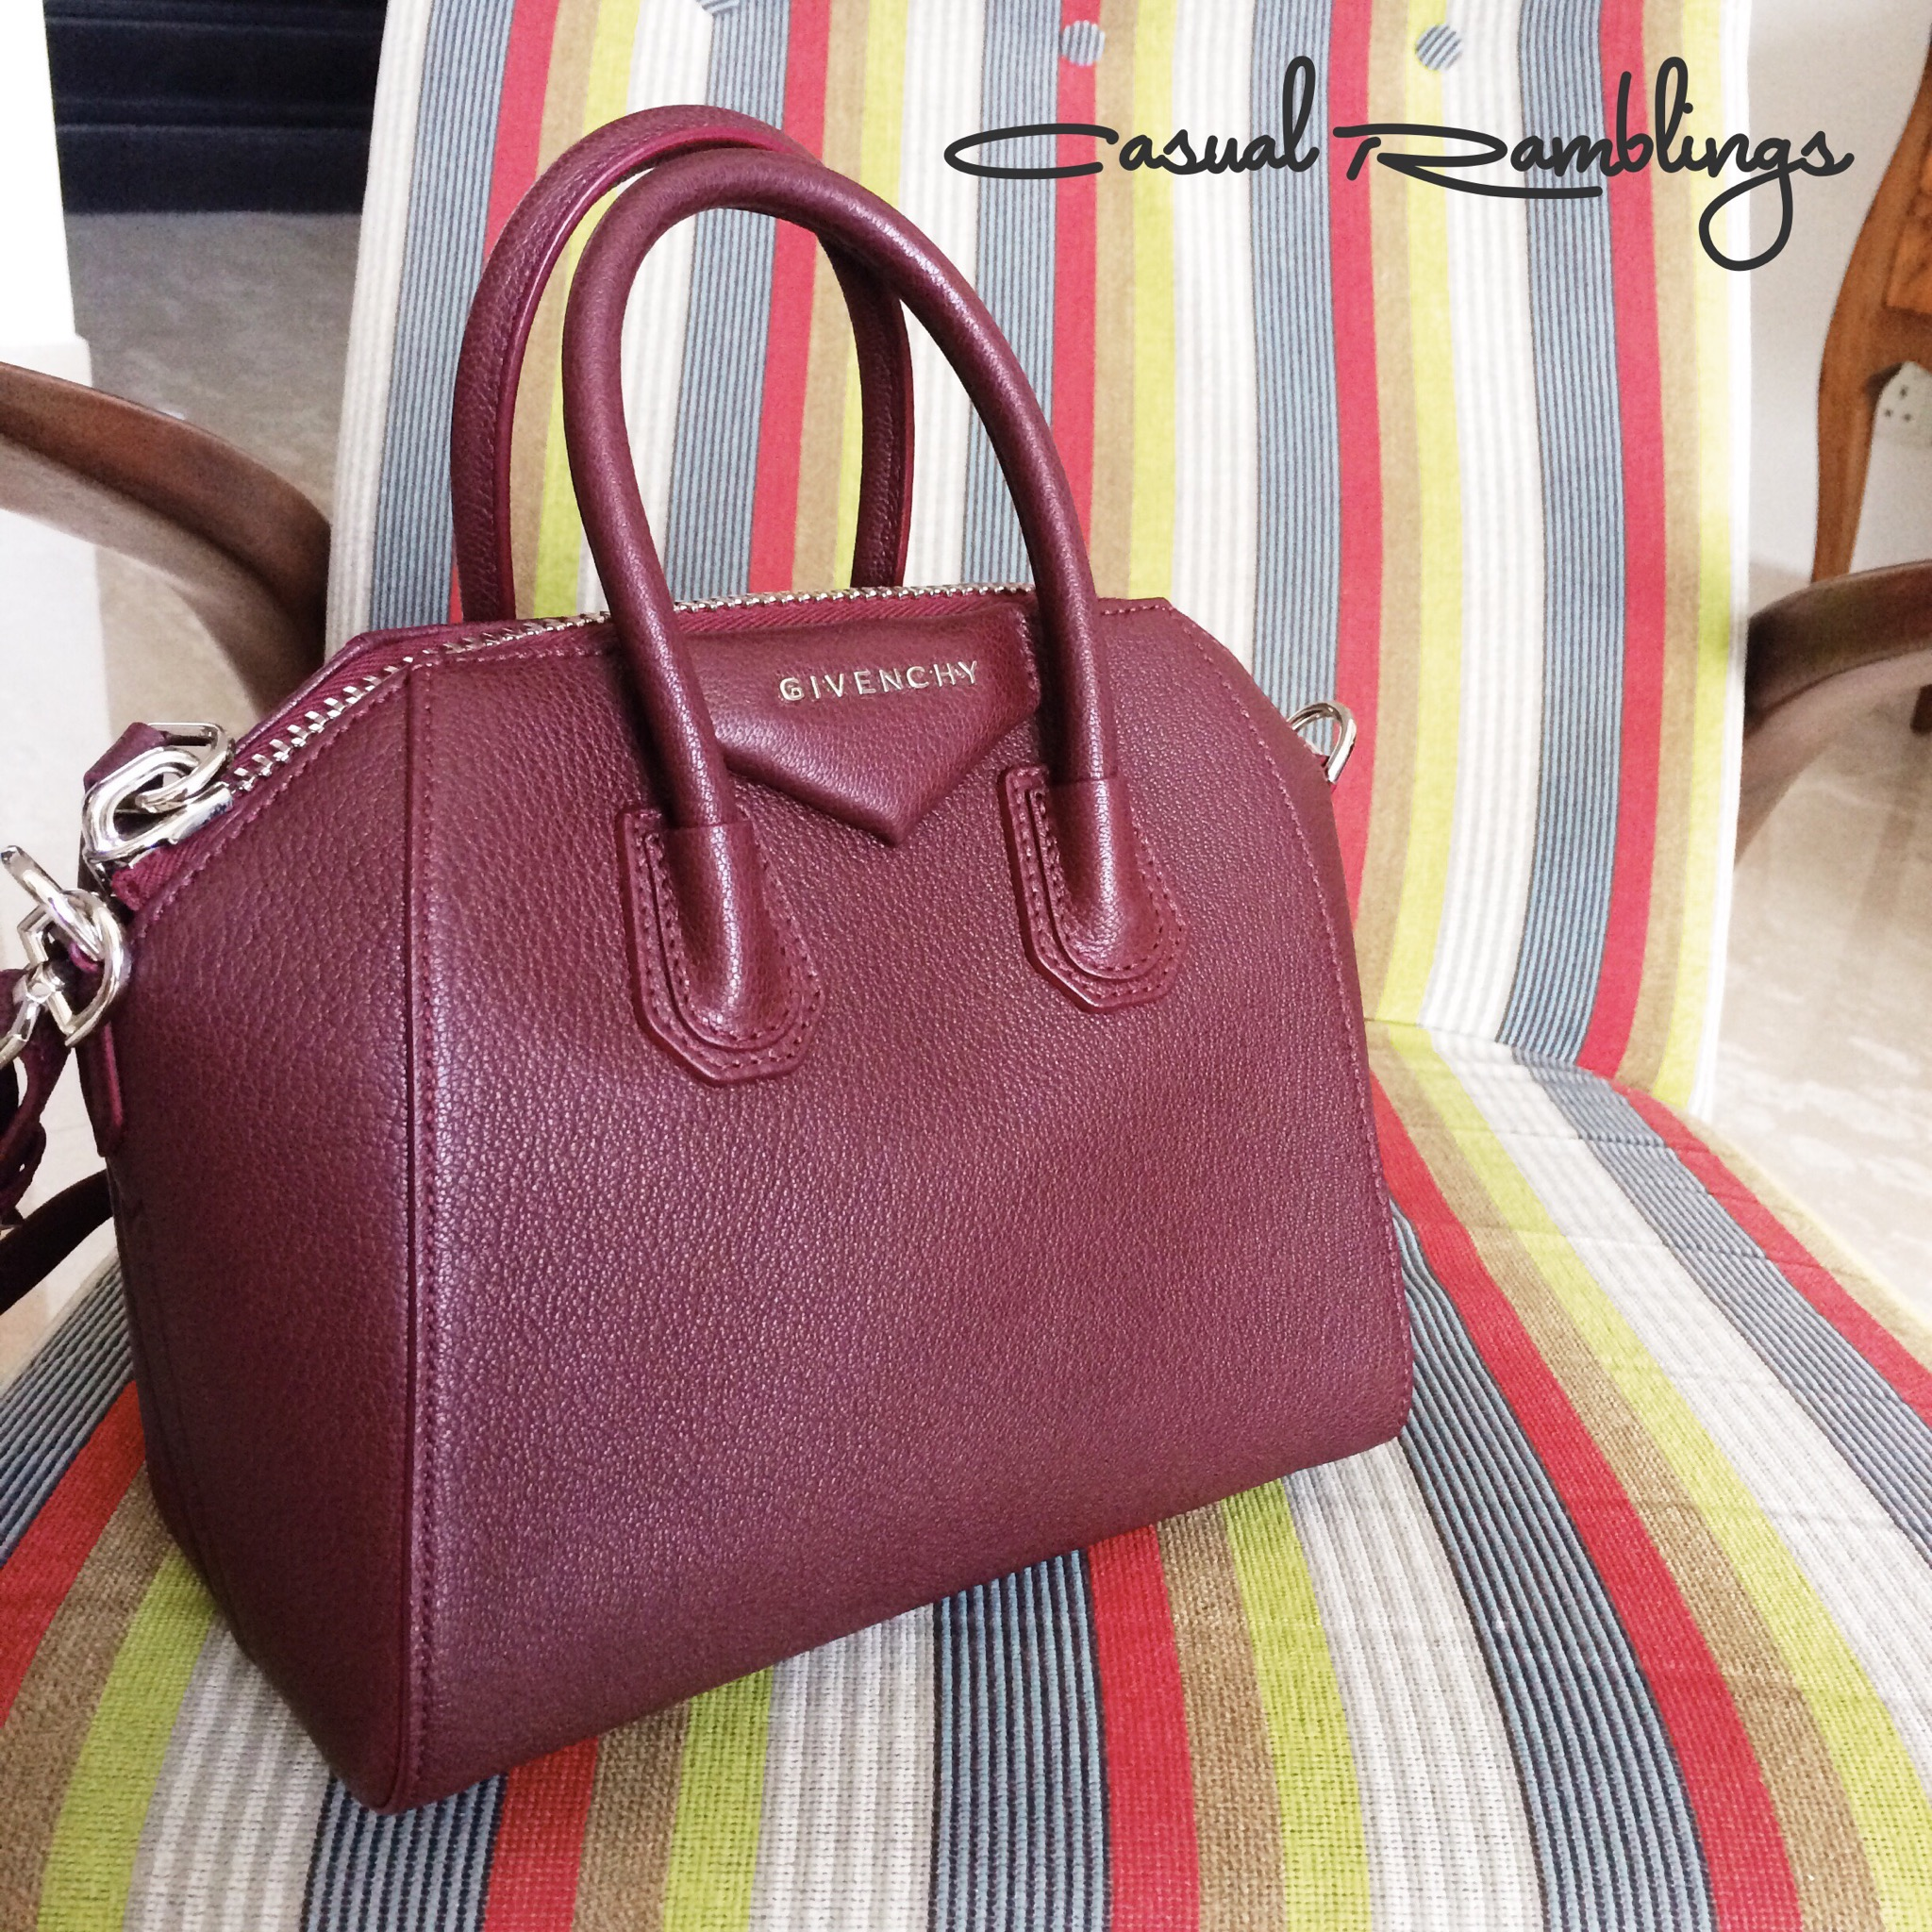 22637dc8a7 Bag Review: Givenchy Mini Antigona | casual ramblings